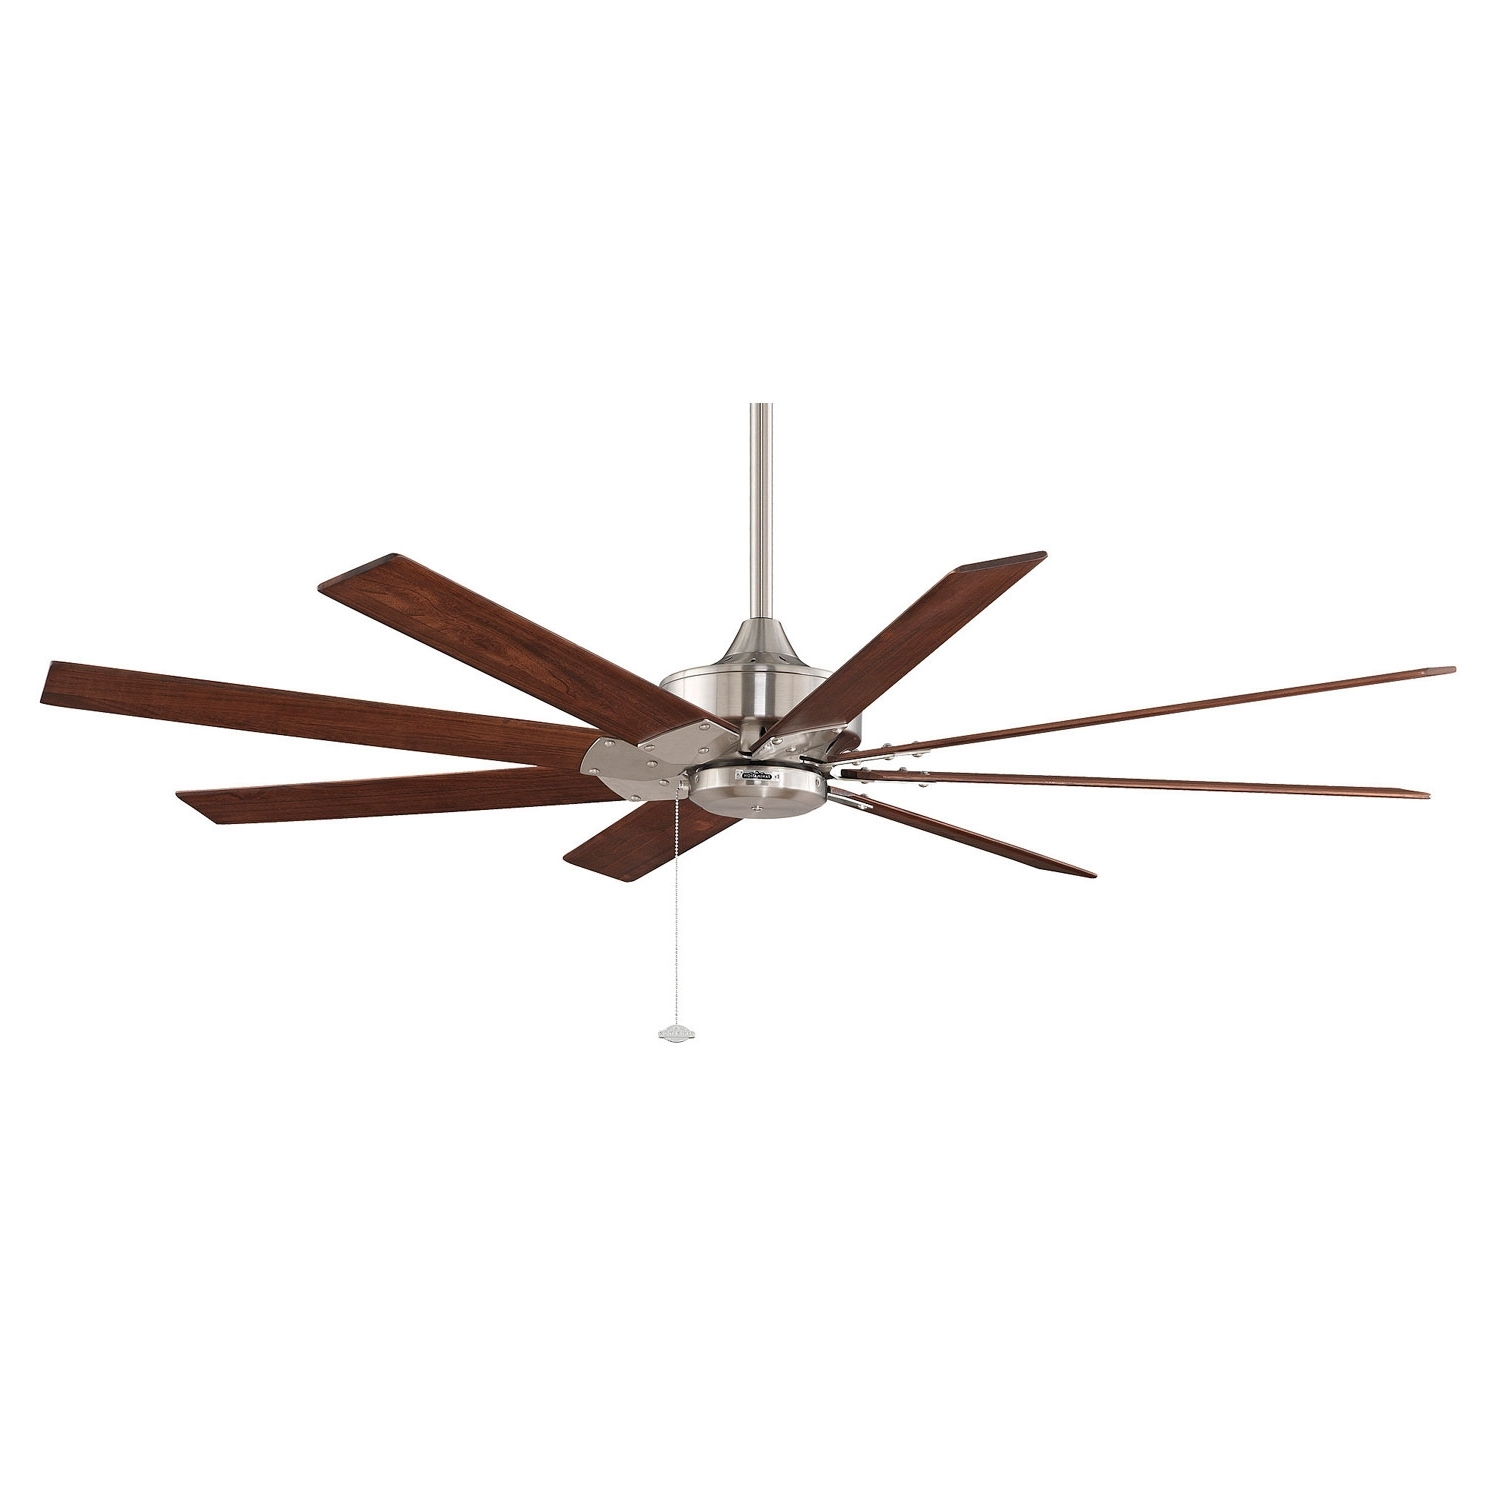 Trendy Fanimation Levon Brushed Nickel 63 Inch Energy Star Ceiling Fan With Inside Brushed Nickel Outdoor Ceiling Fans (View 11 of 20)